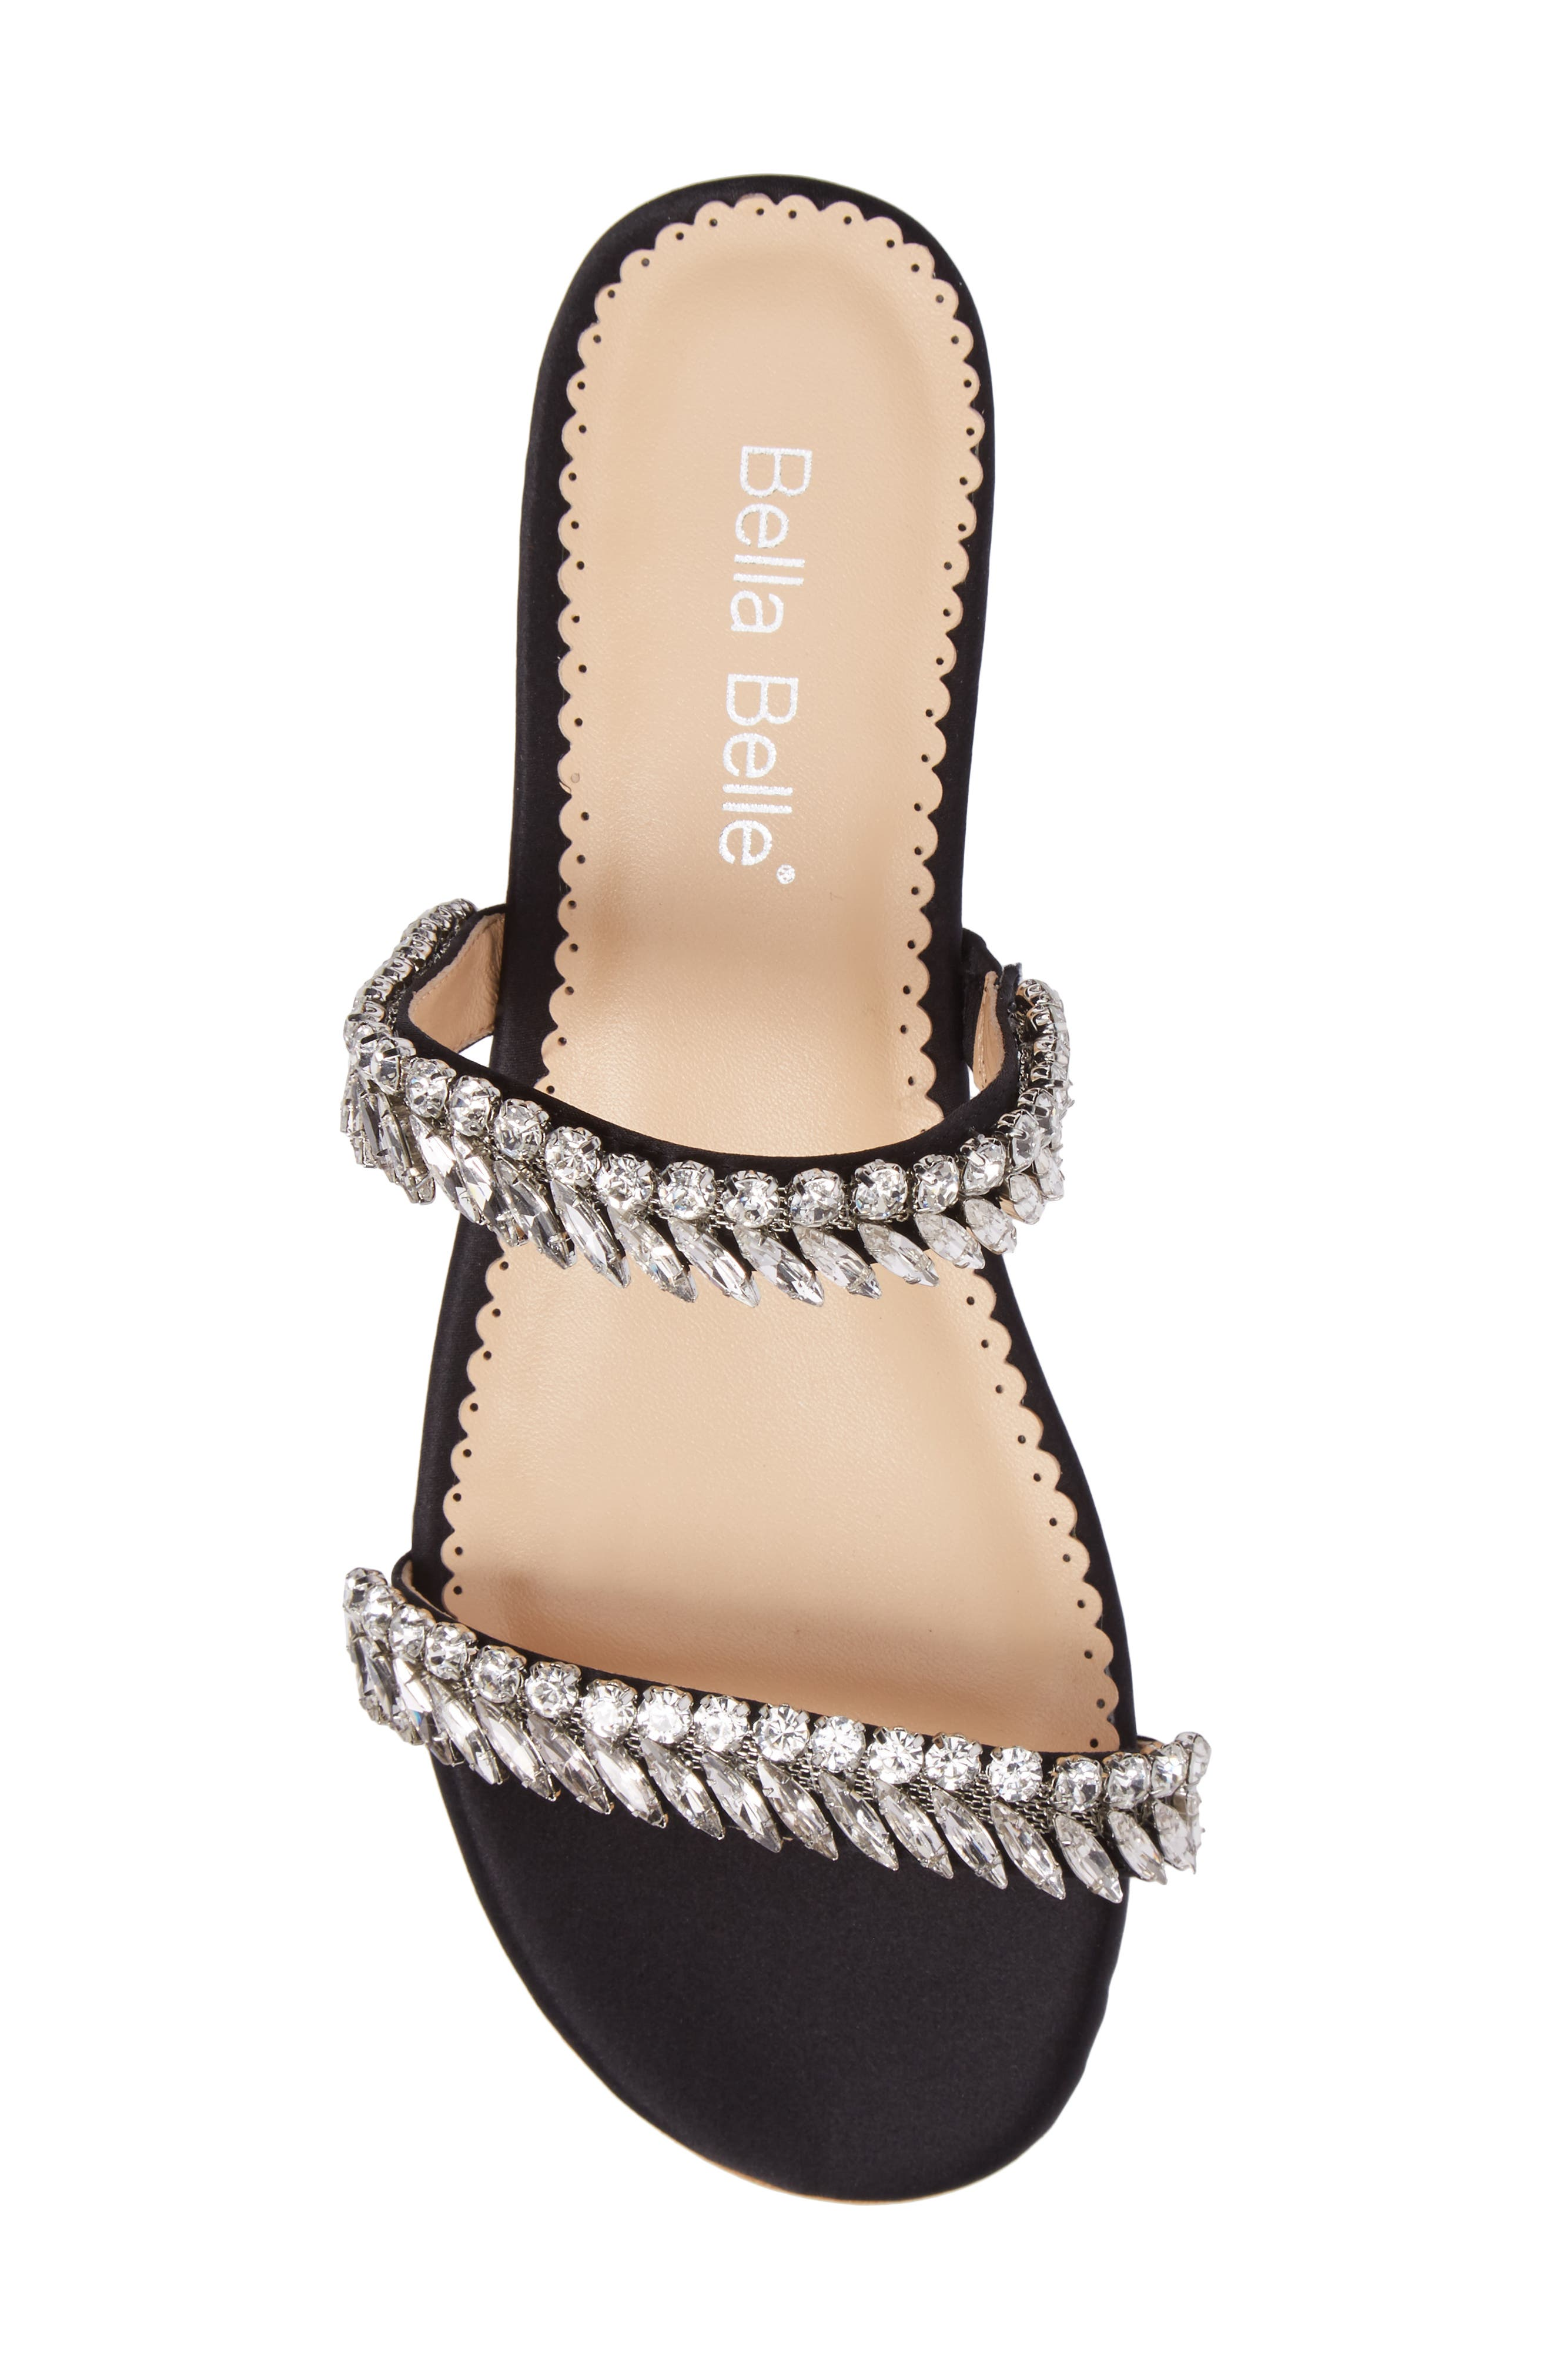 Bree Jeweled Evening Sandal,                             Alternate thumbnail 5, color,                             Black